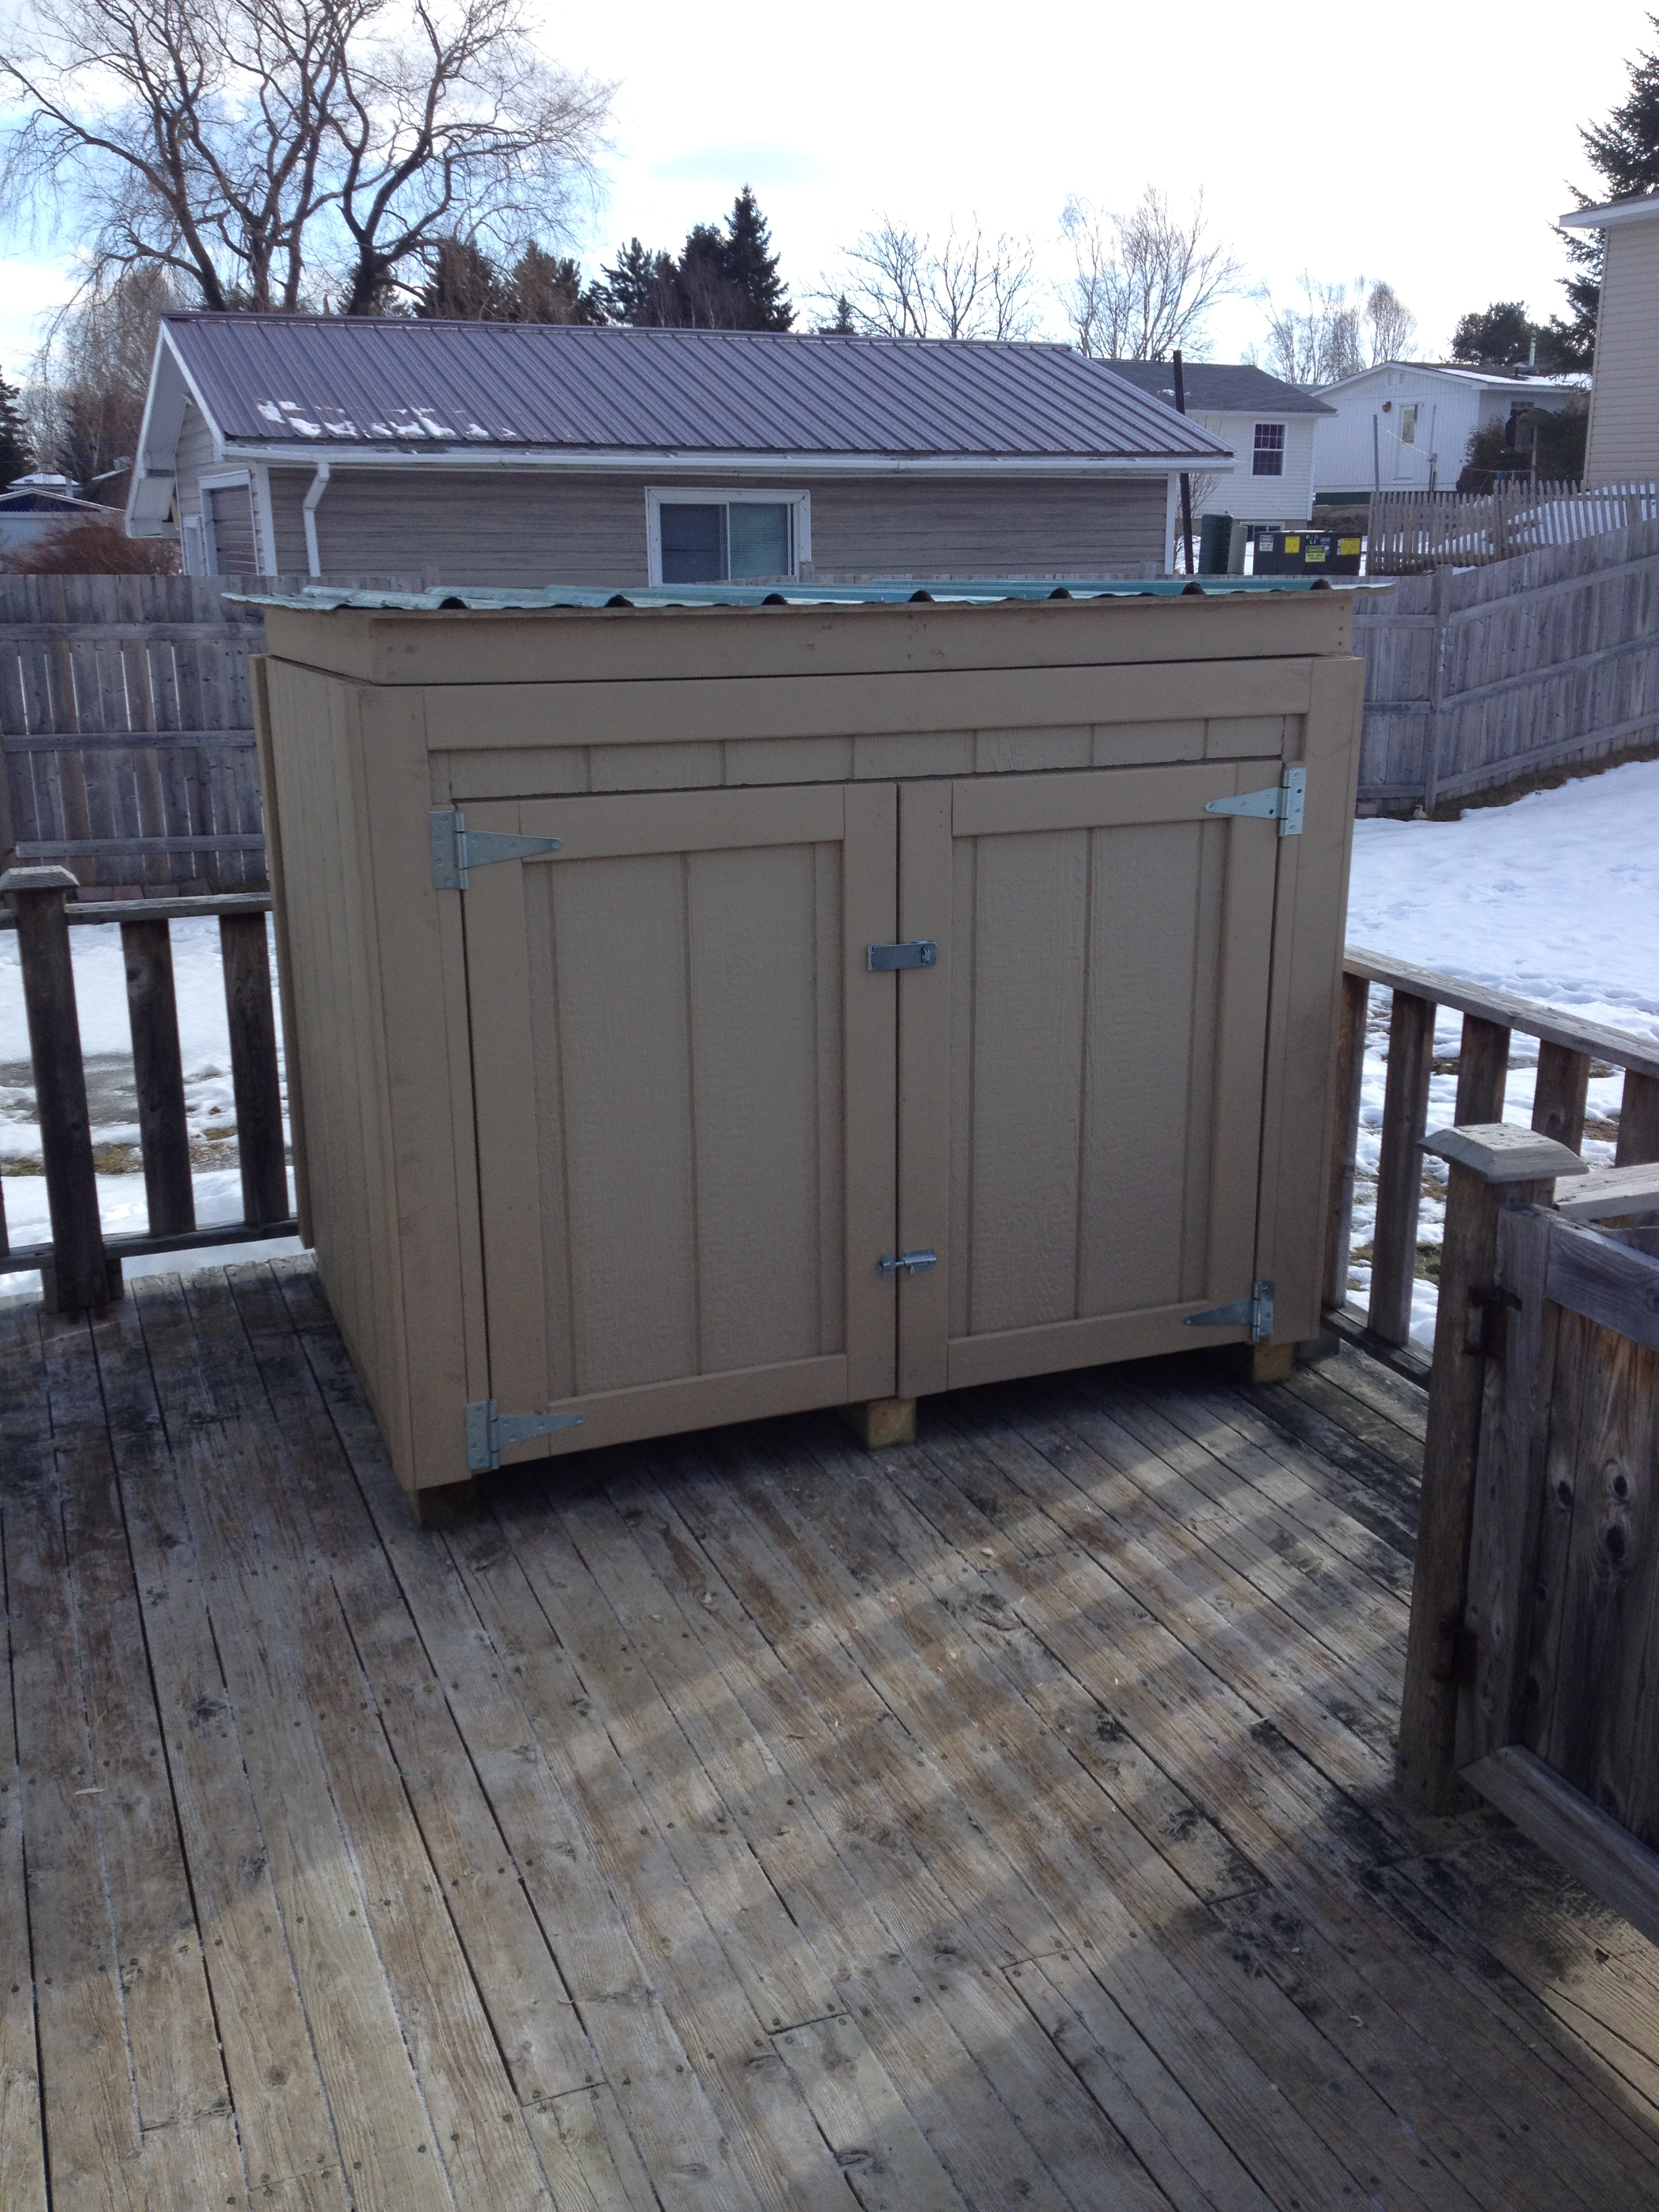 new brunswick to house a backup generator the owner builder said